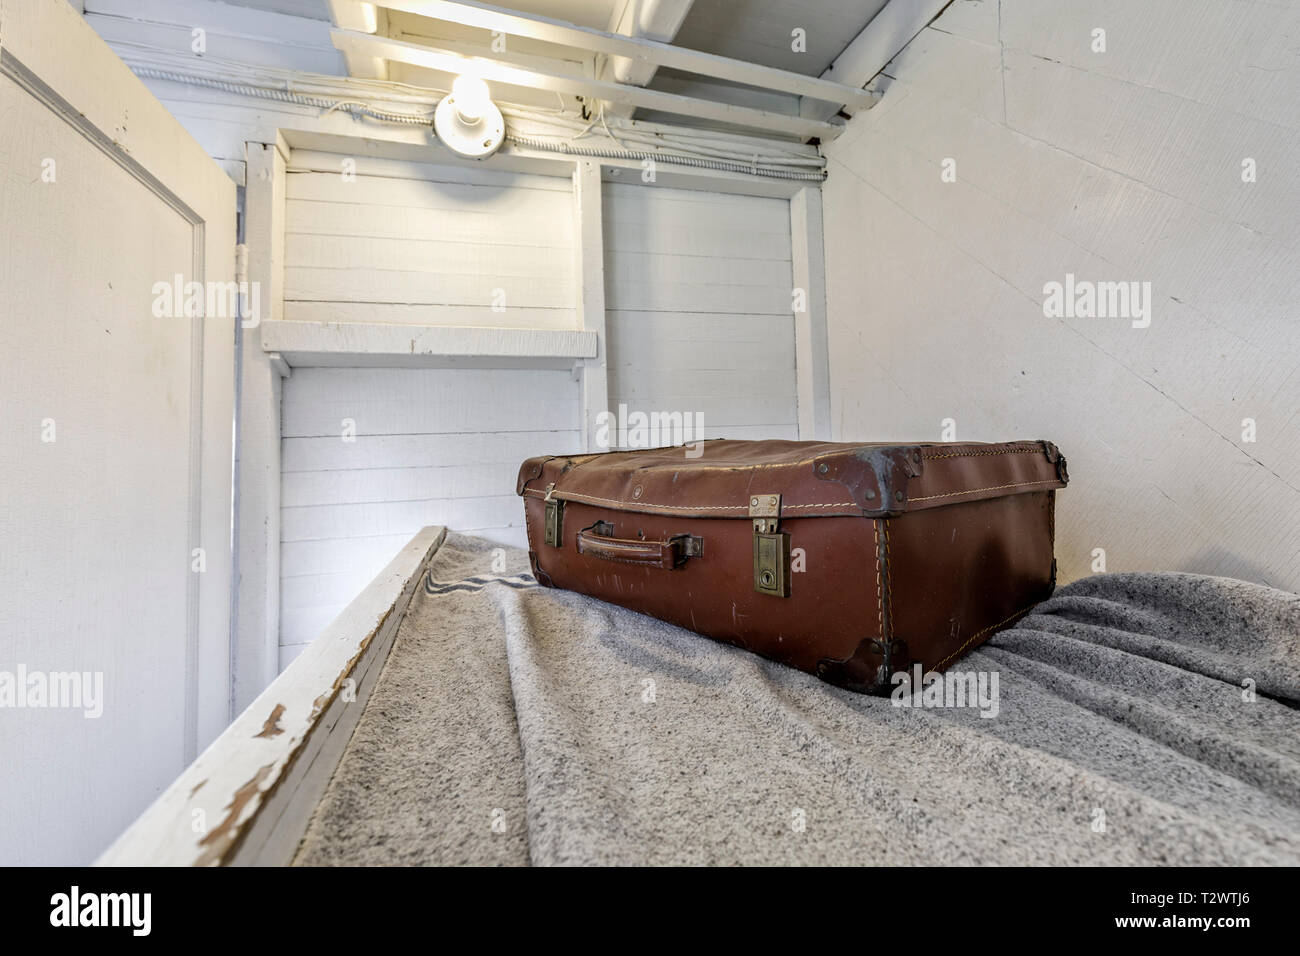 Vintage luggage on a ships passenger cabin bunk of  the SS Keenora steamship at the Marine Museum of Manitoba, Selkirk, Manitoba, Canada. - Stock Image